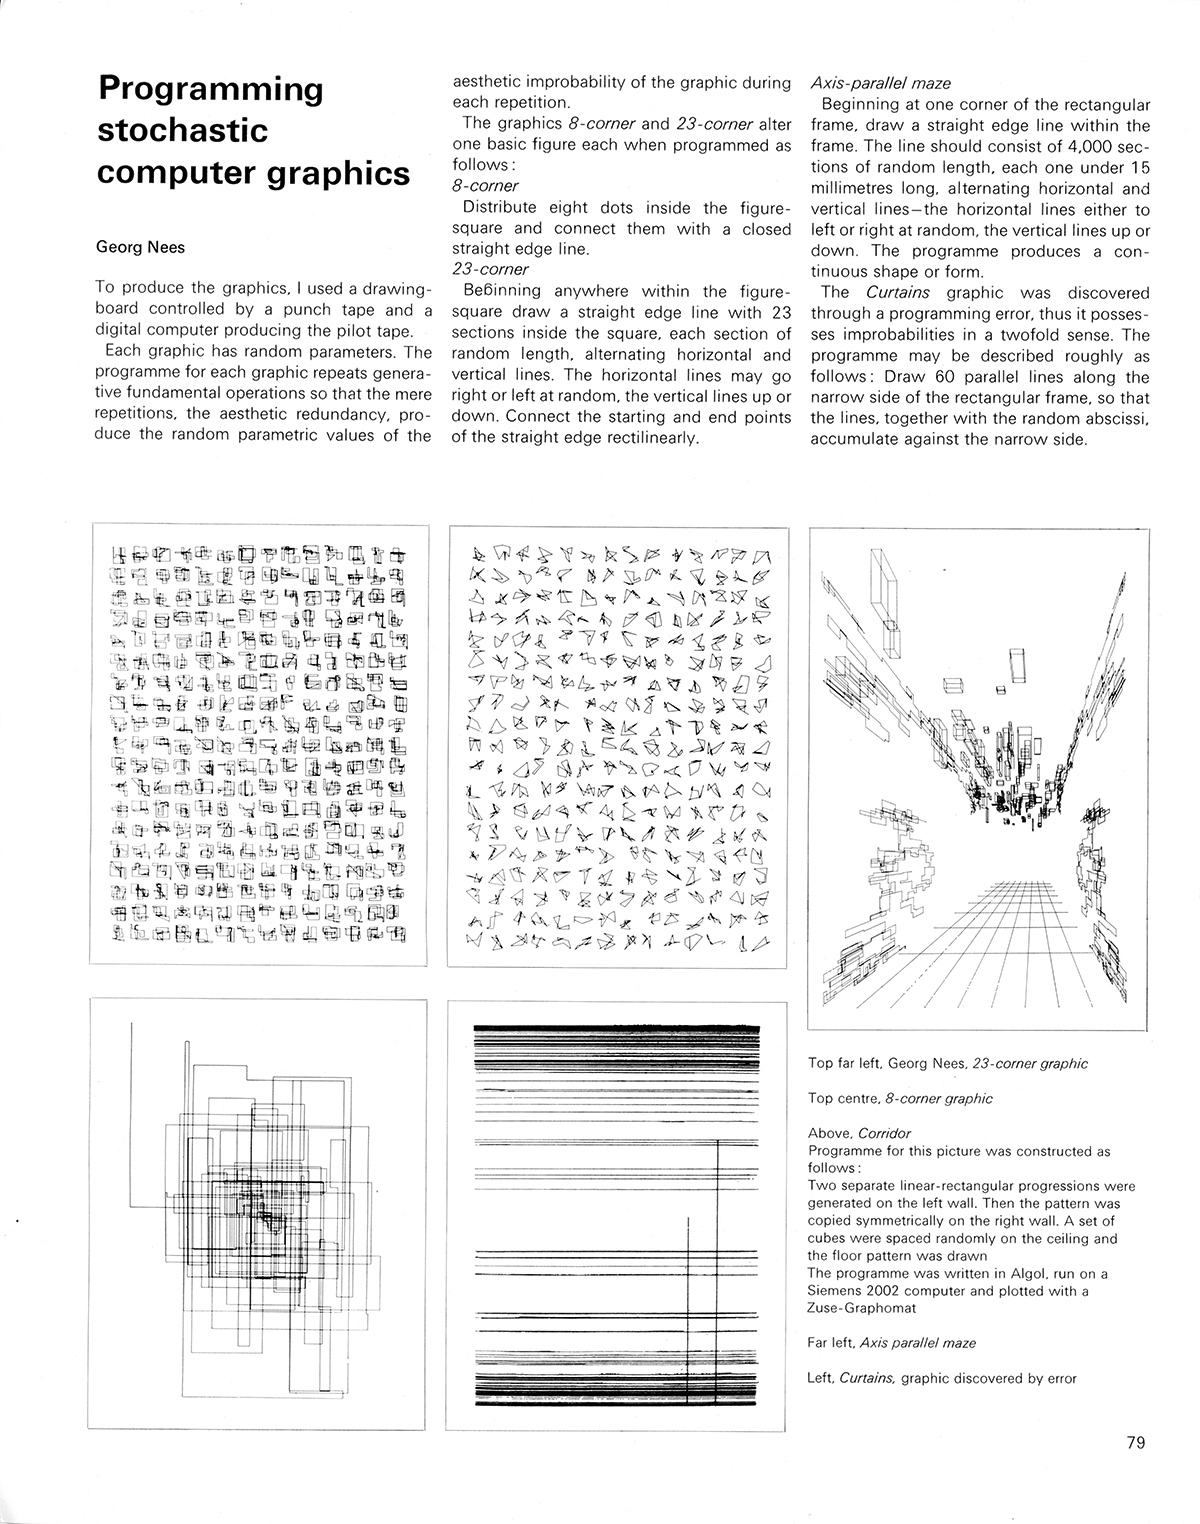 Programming stochastic computer graphics by Georg Need. Cybernetic Serendipity: The Computer and the Arts, Studio International Special Issue, 1968, page 79.